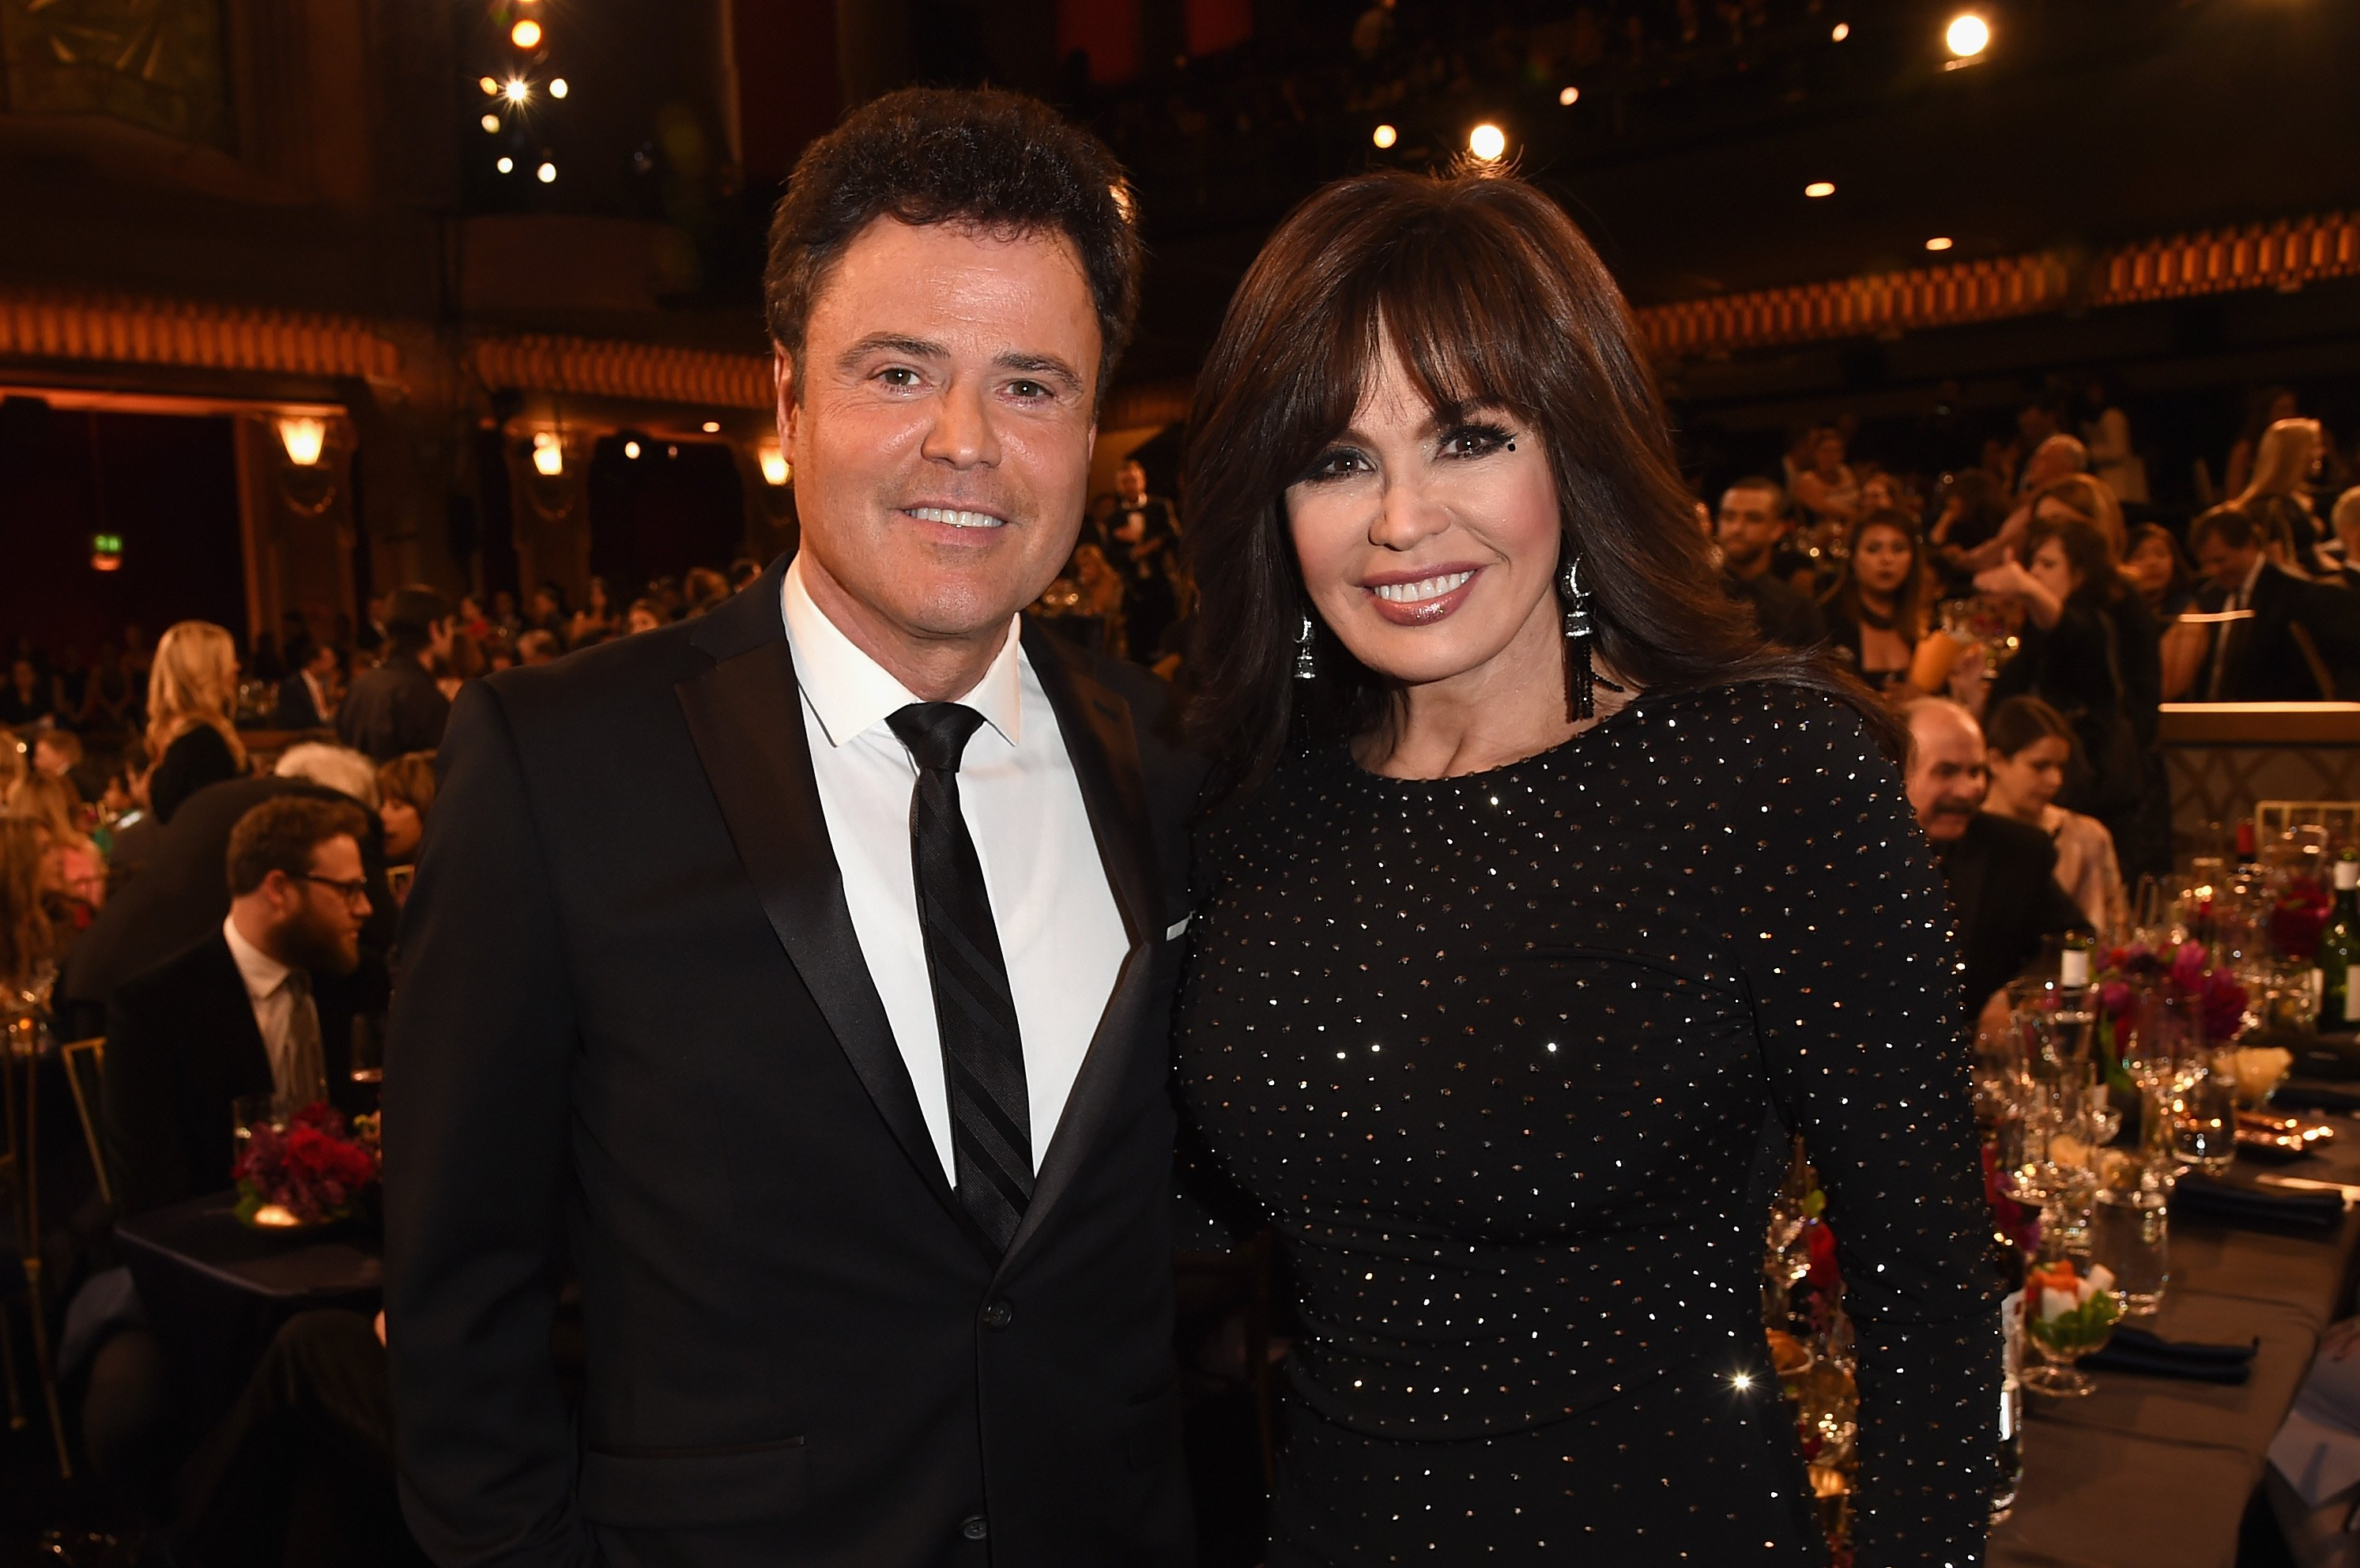 Donny Osmond and Marie Osmond attend the 2015 TV Land Awards on April 11, 2015, in Beverly Hills, California. | Source: Getty Images.